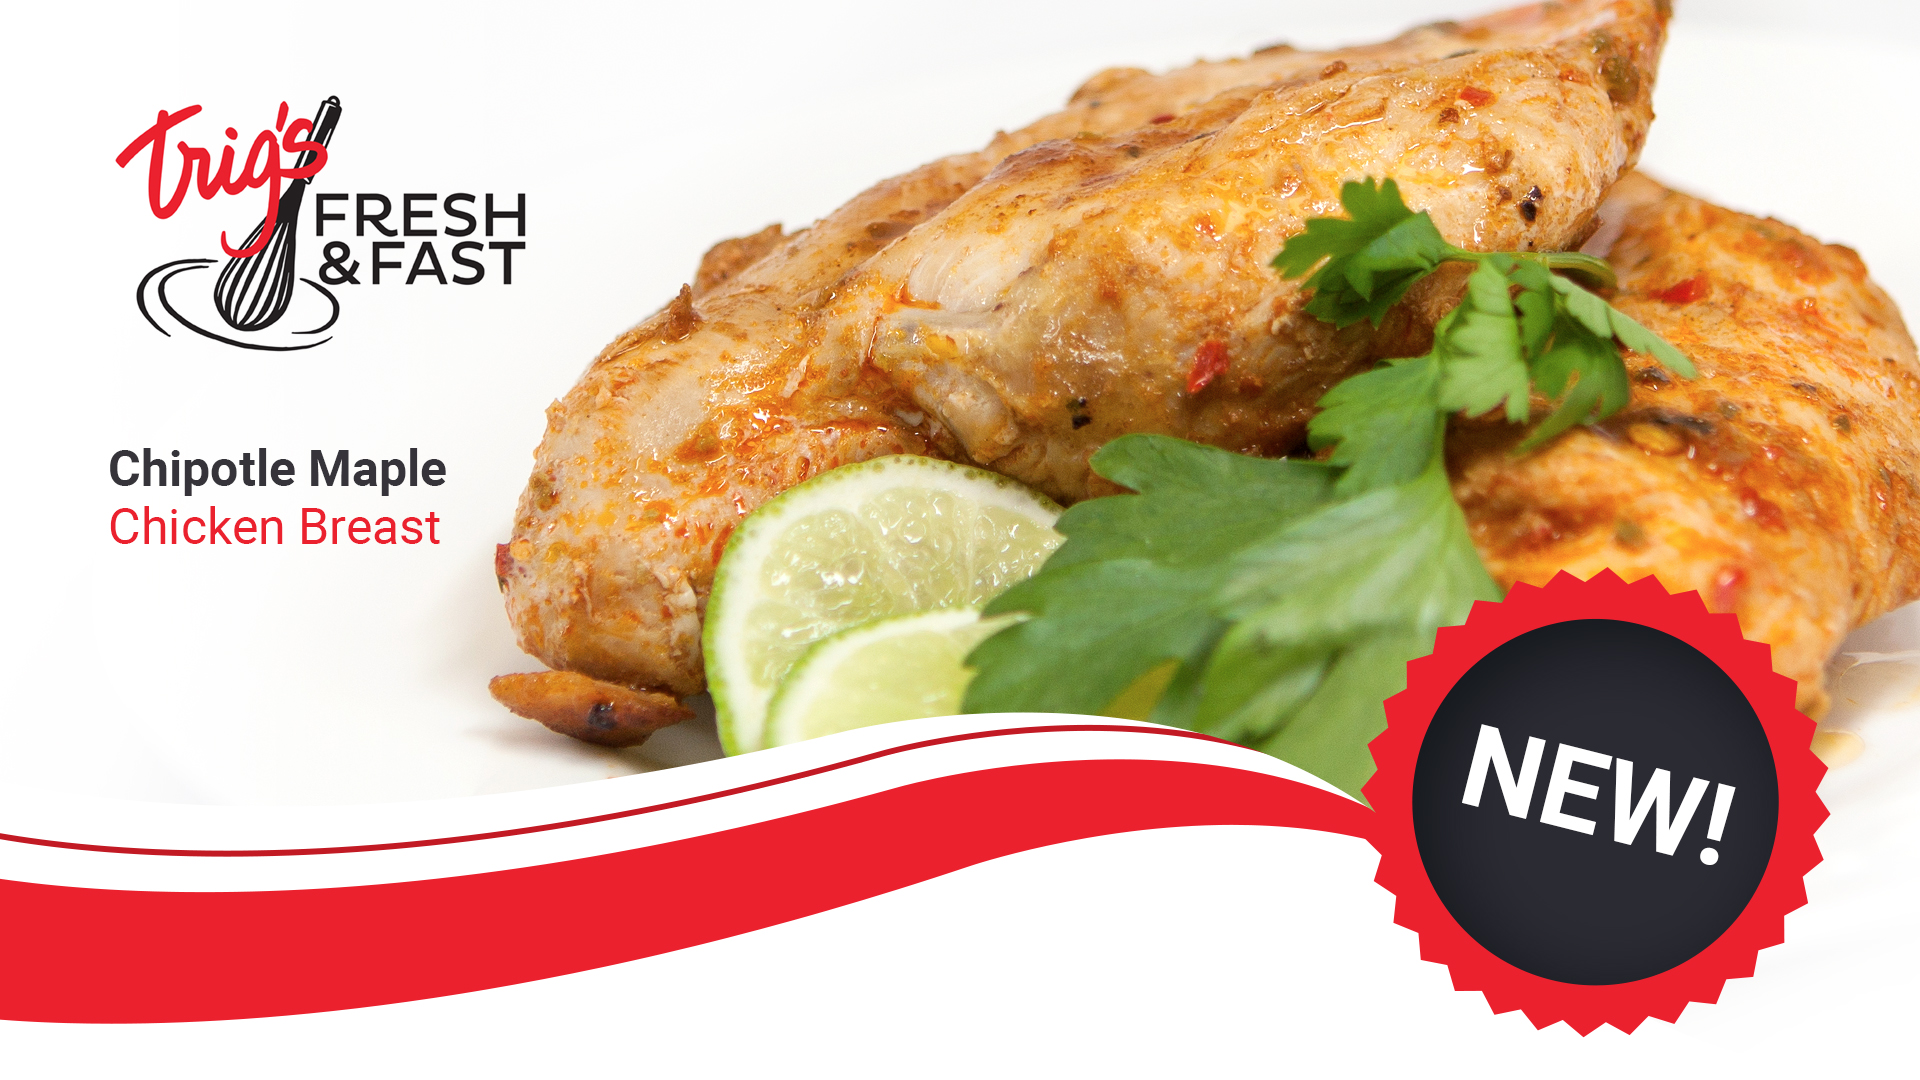 Photography and graphic design for fresh & fast by llumin8 - chipotle maple chicken breast